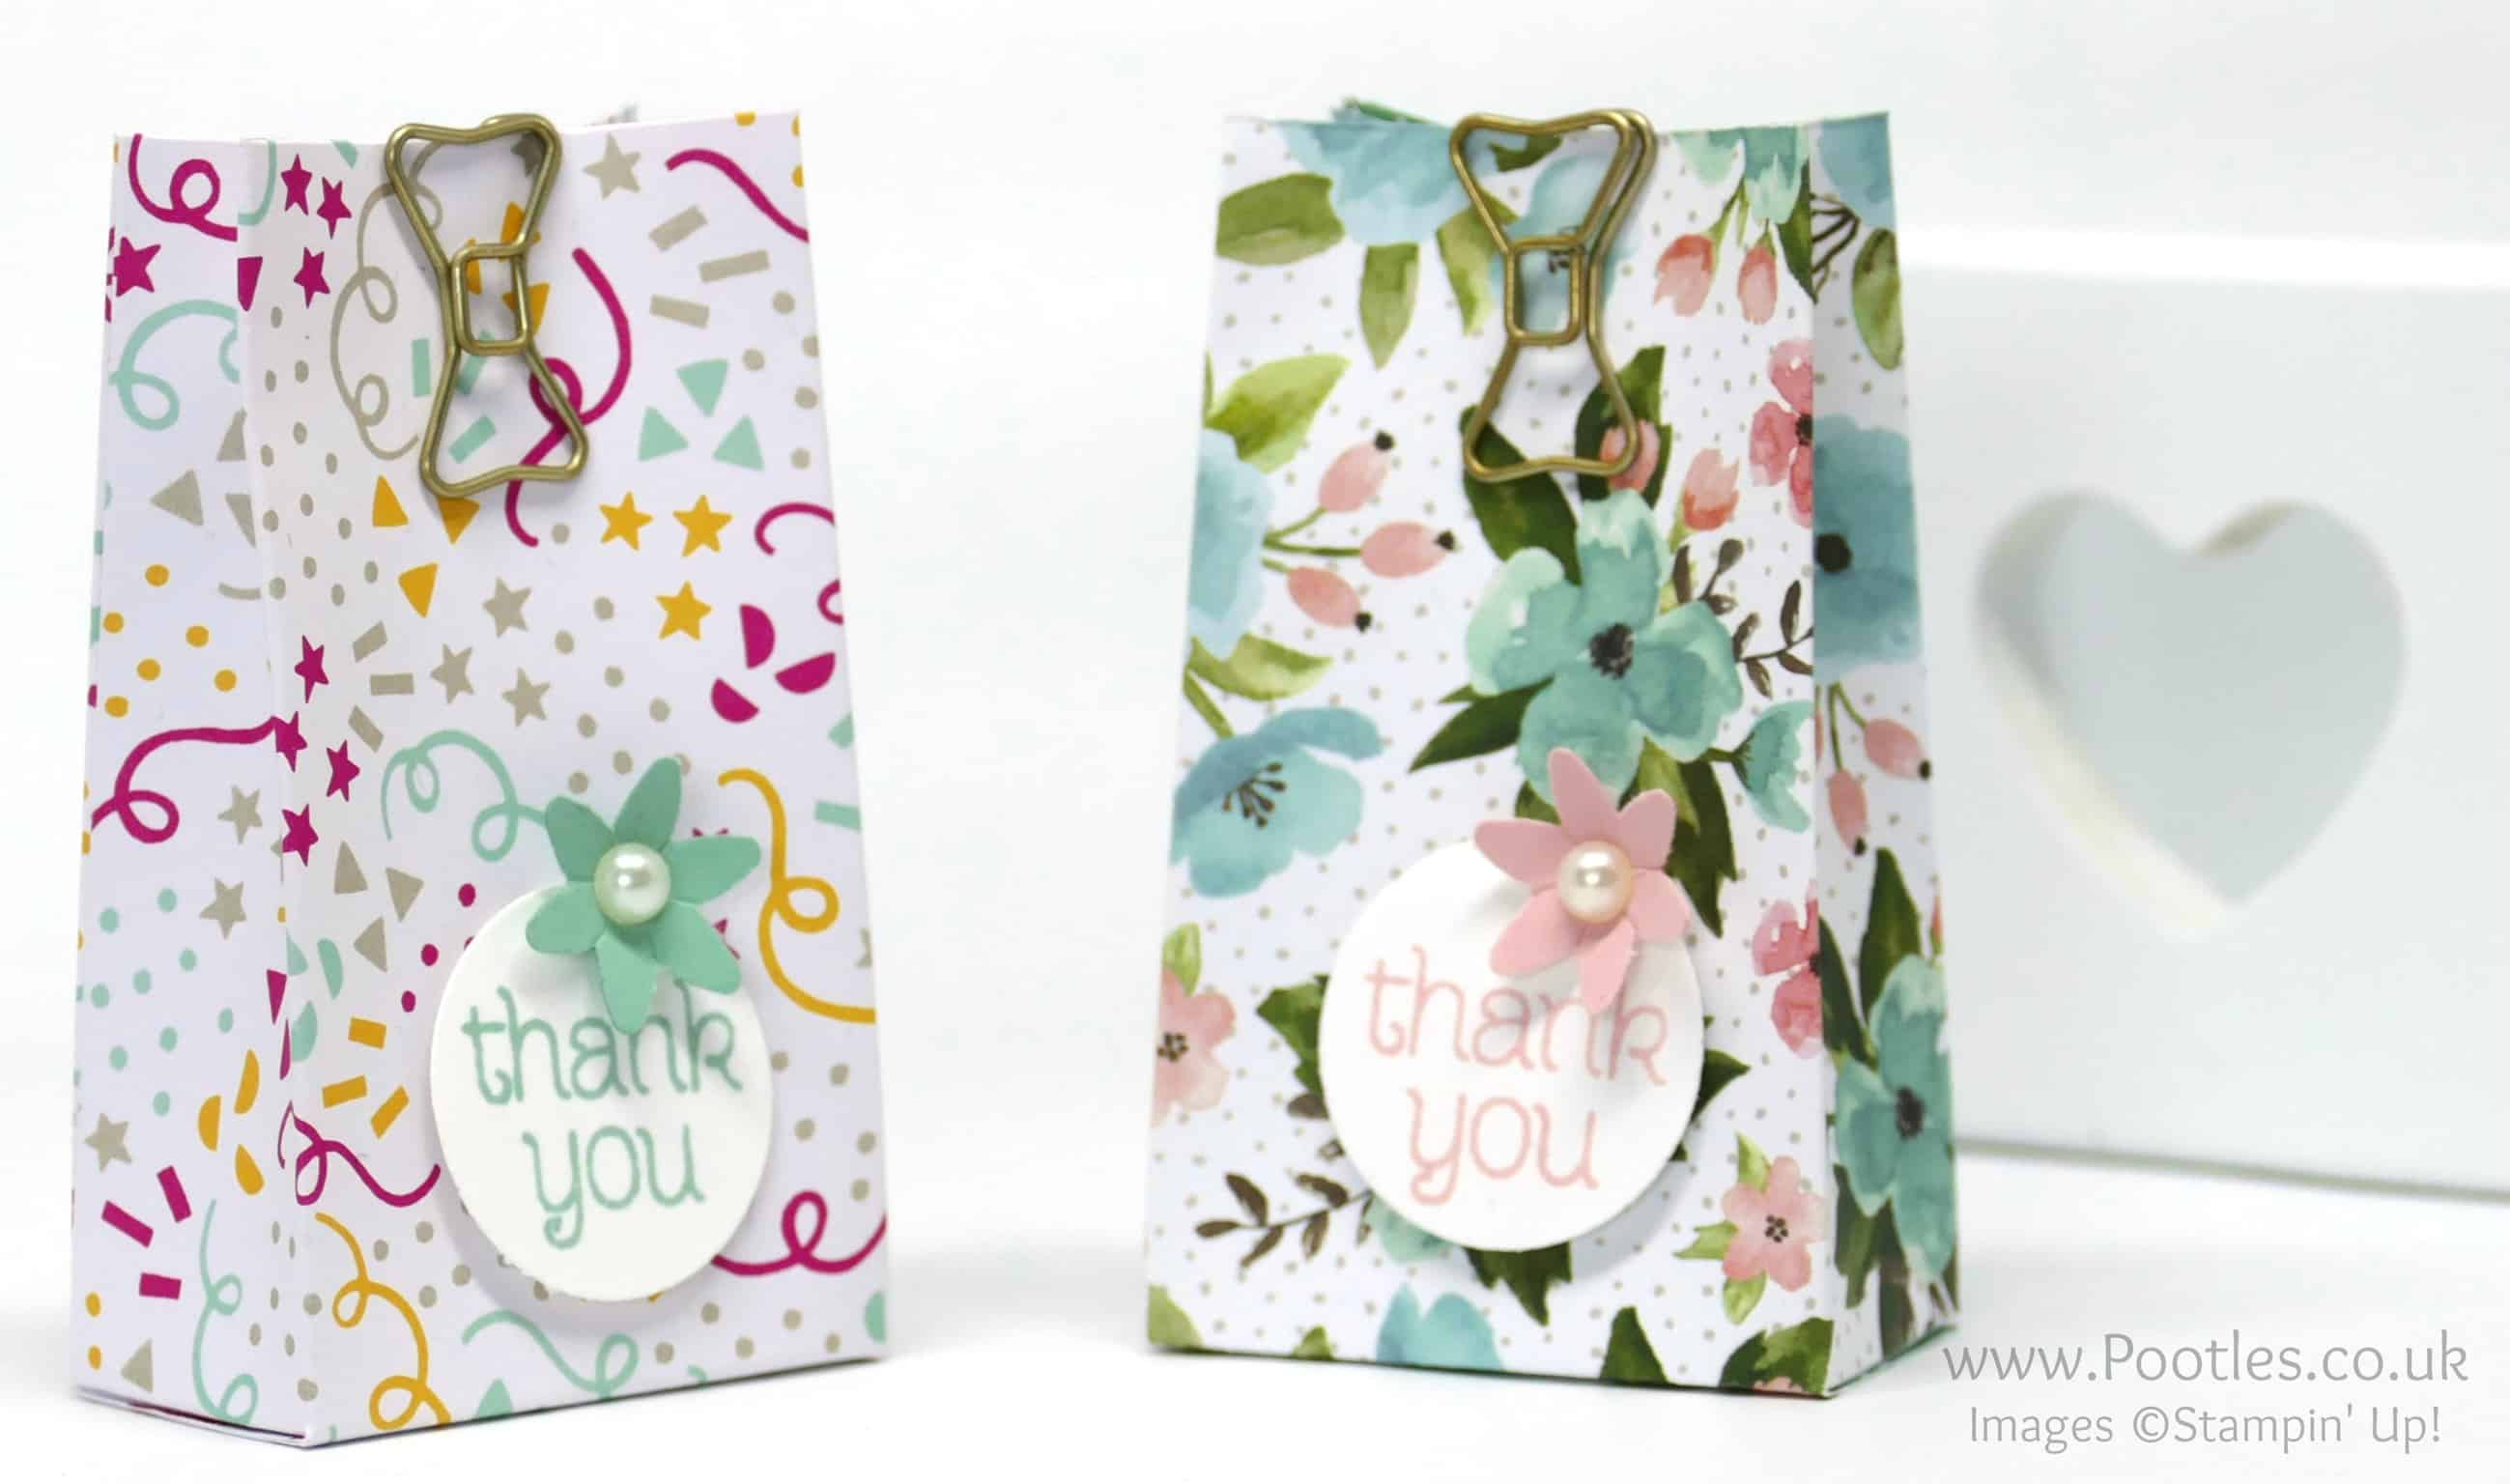 Pootles' Way Back Wednesday 6 Bags from 1 Sheet of Paper